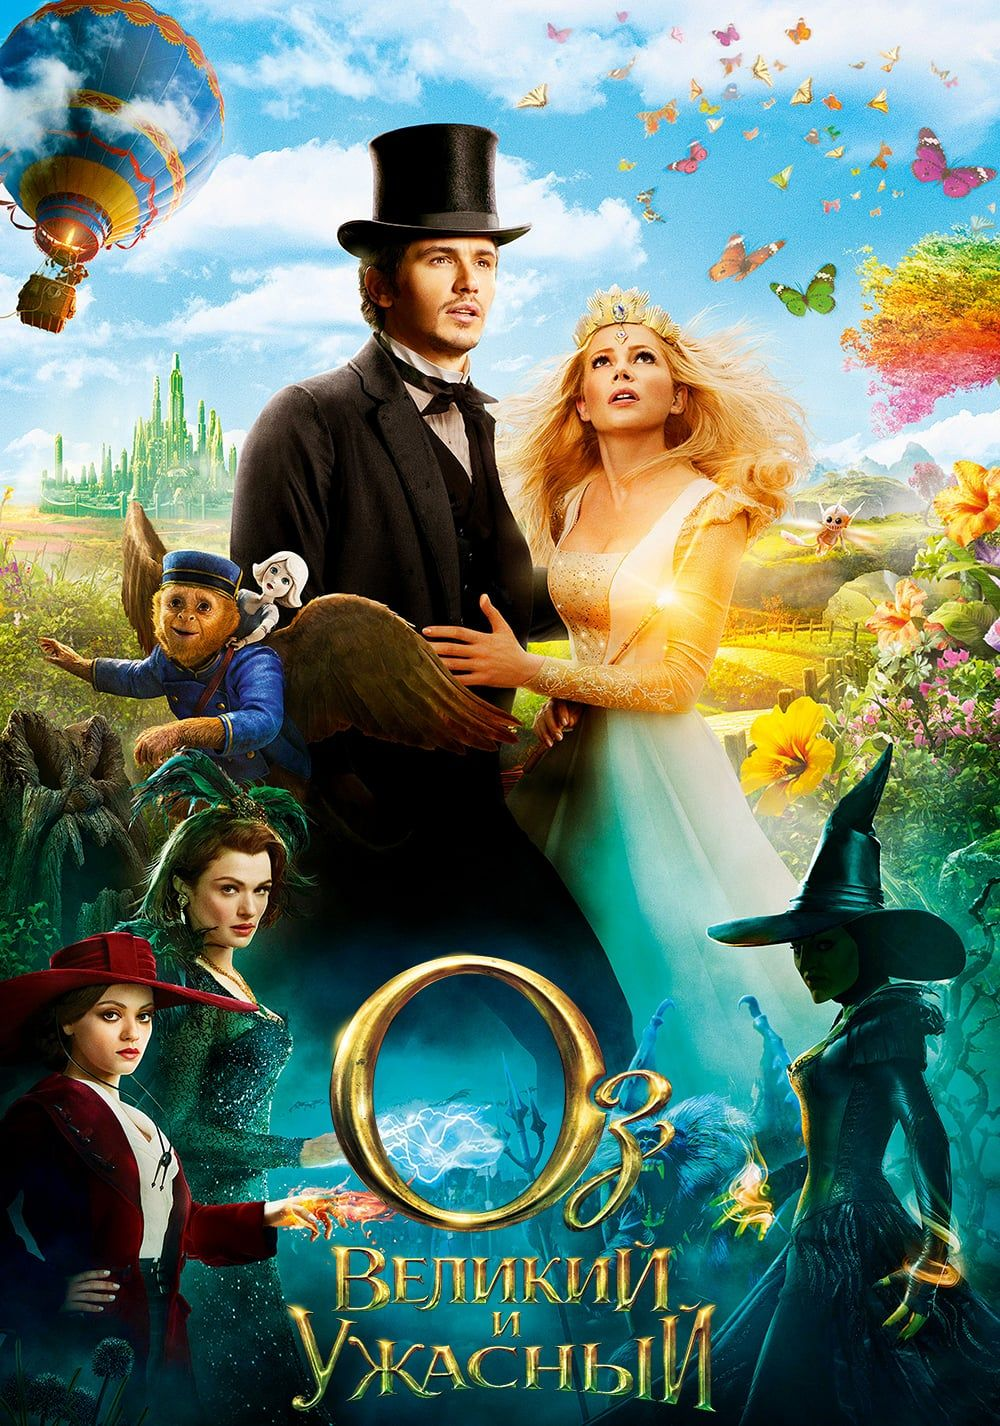 Oz The Great And Powerful Teljes Film Magyarul Hungary Ozthegreatandpowerful Magyarul Teljes Magyar F Disney Live Action Movies Oz Movie Disney Posters